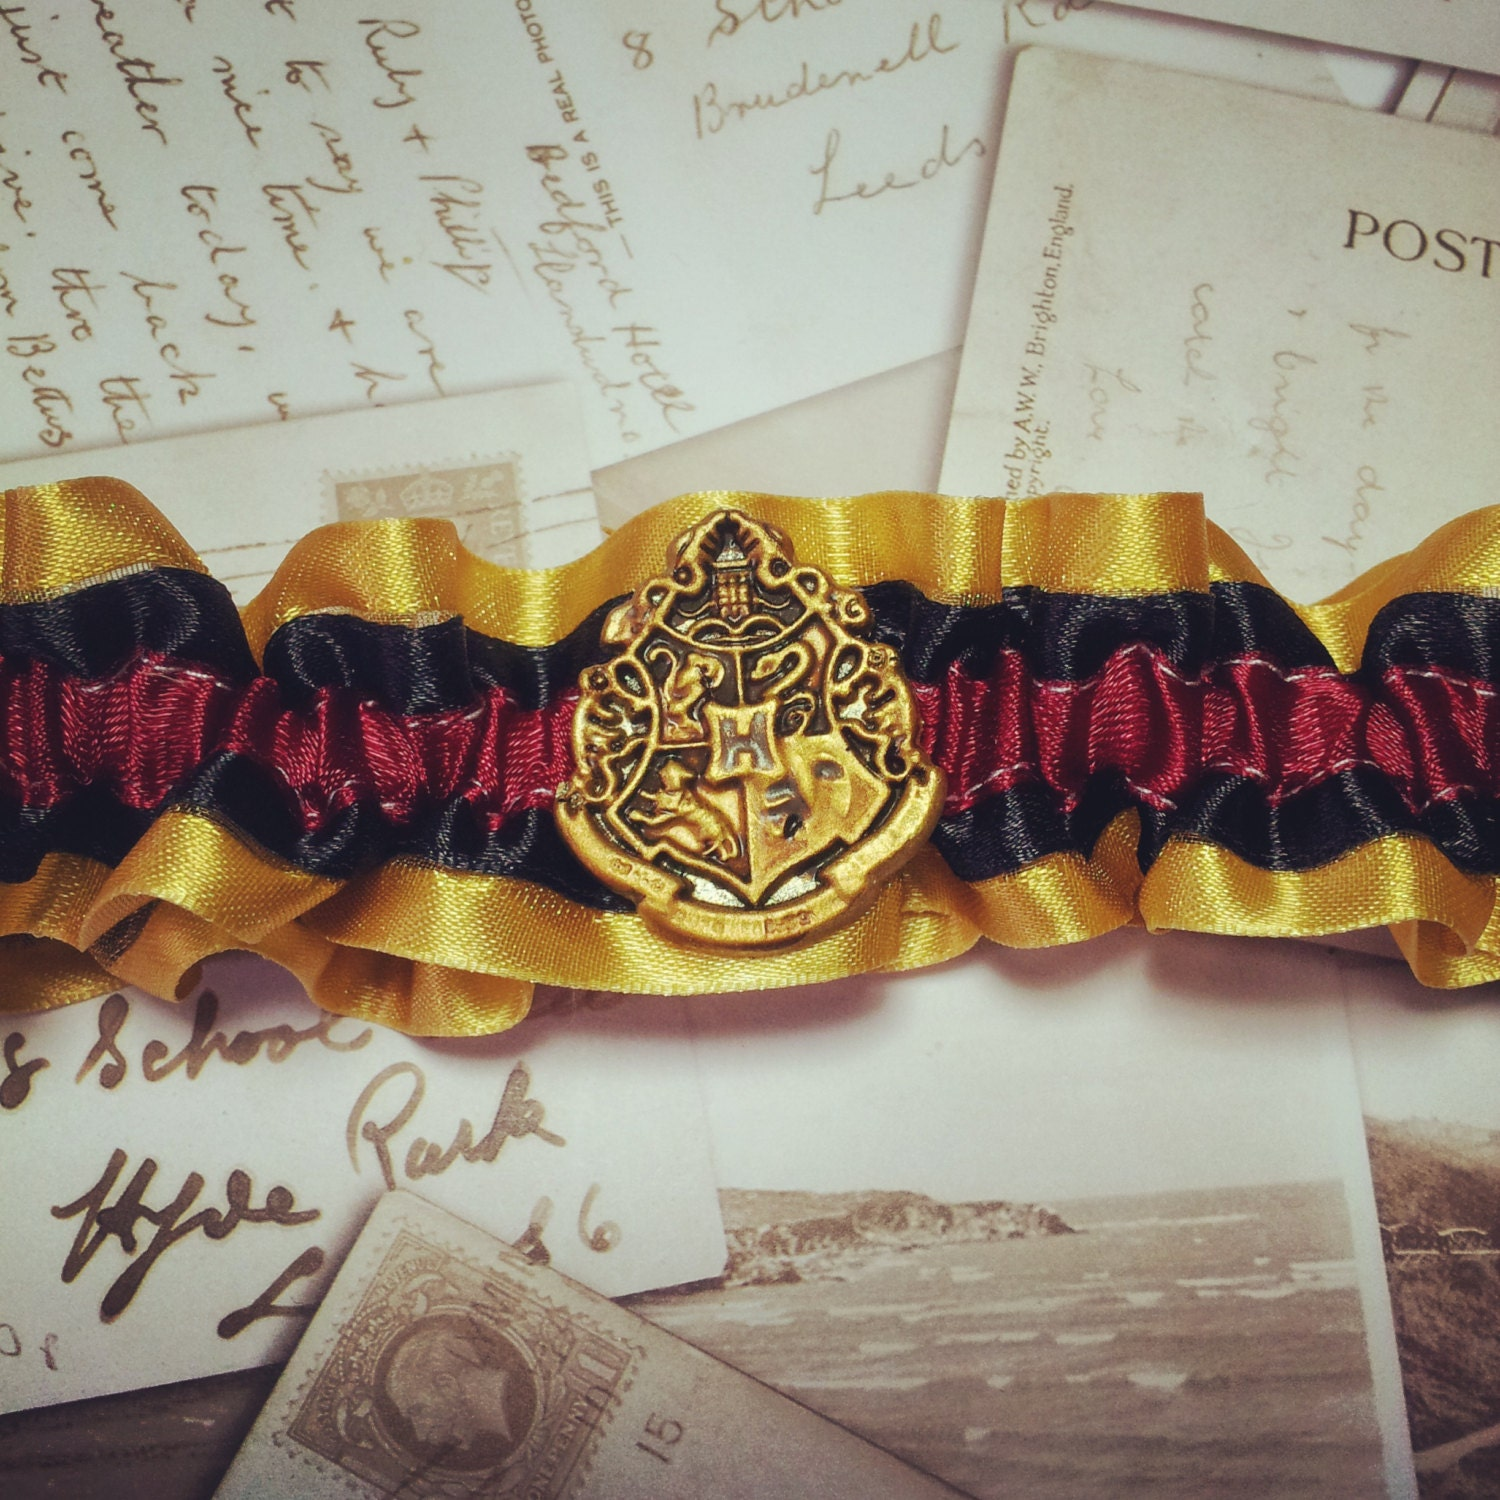 Harry Potter Garter  Harry Potter Wedding Harry Potter garter set Hogwarts Gryffindor Slytherin Ravenclaw Hufflepuff wedding garter